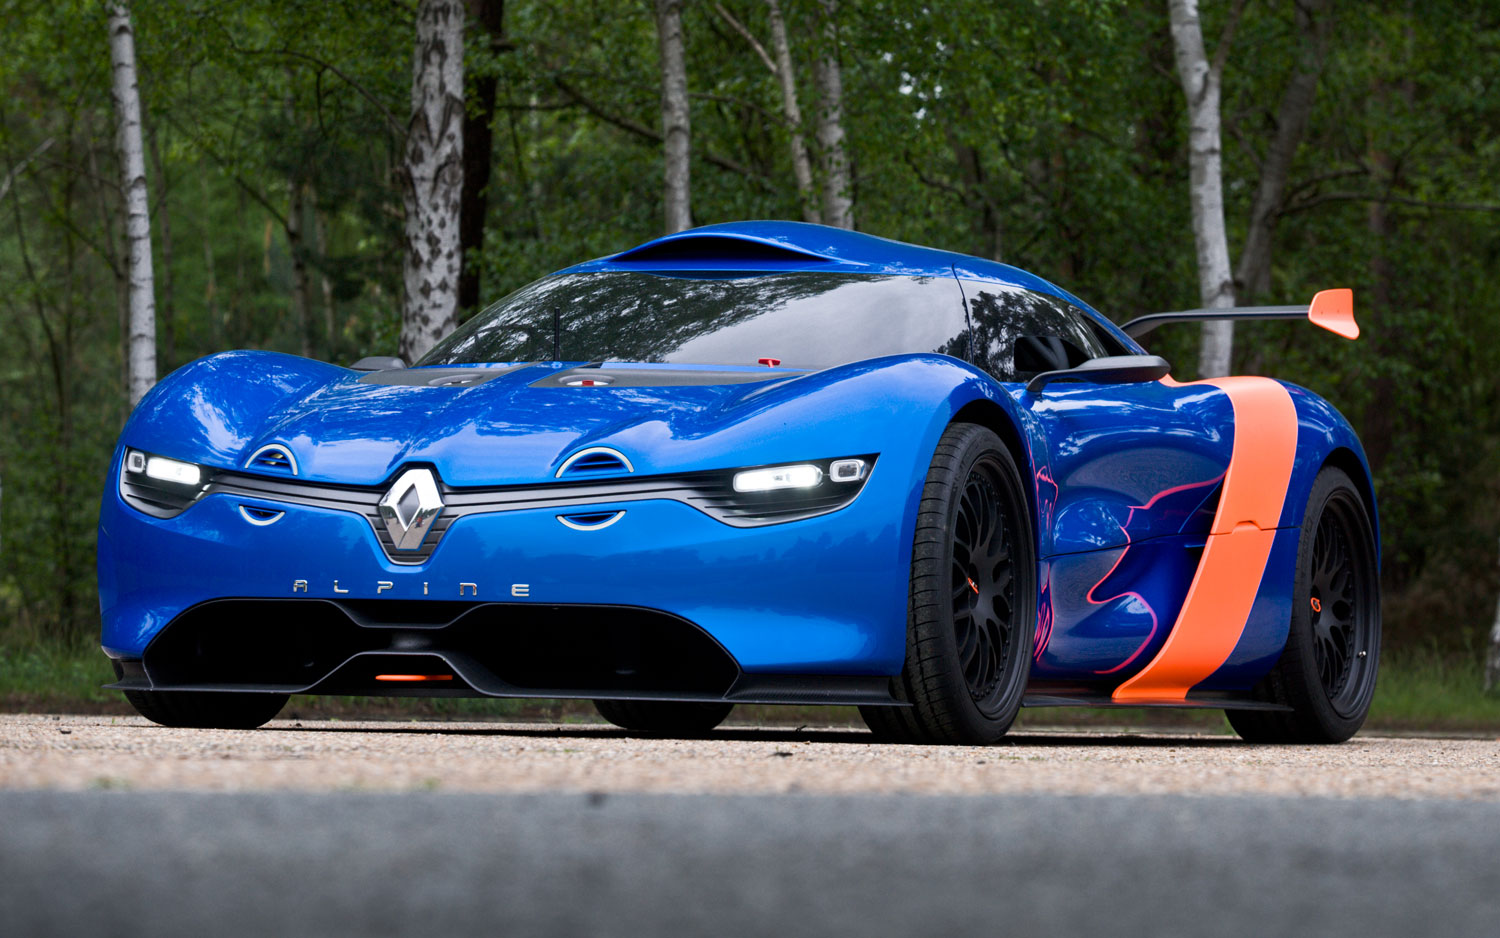 Alpine Renault A110 50 Concept Front Three Quarter View 21